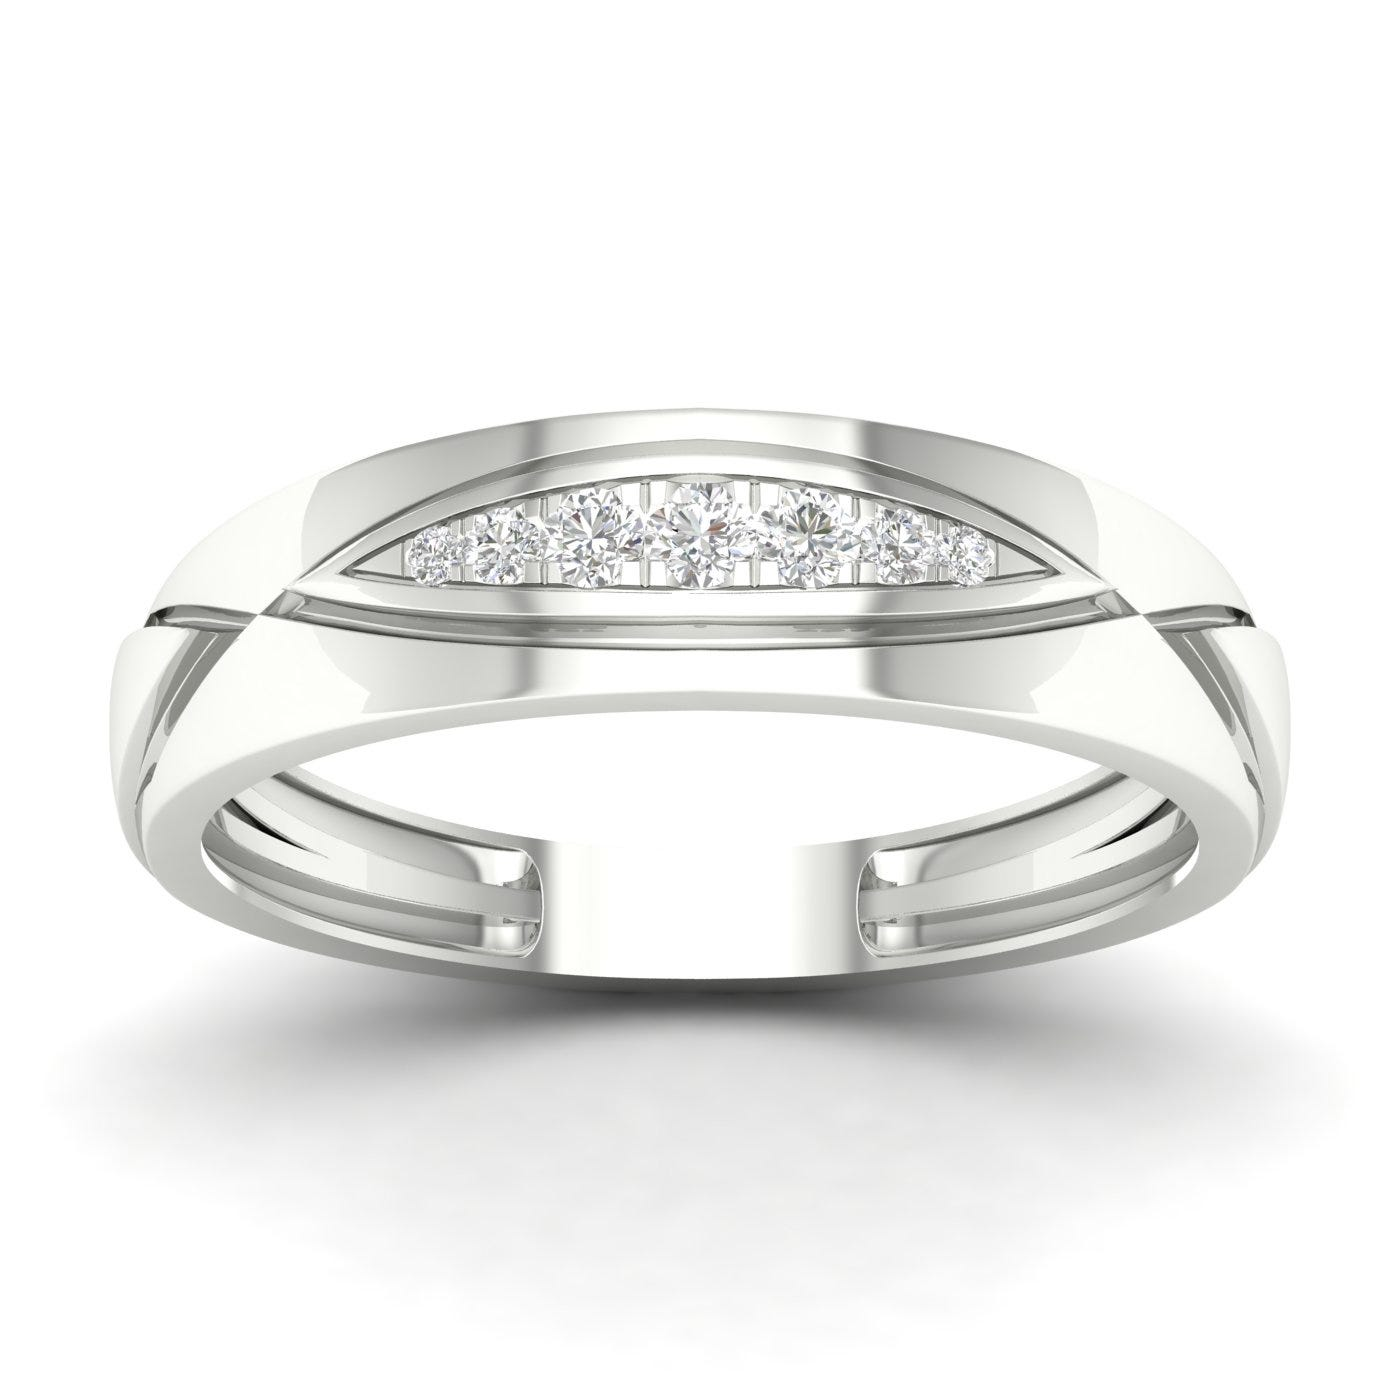 Gents Diamond Geometric Band in 10k White Gold